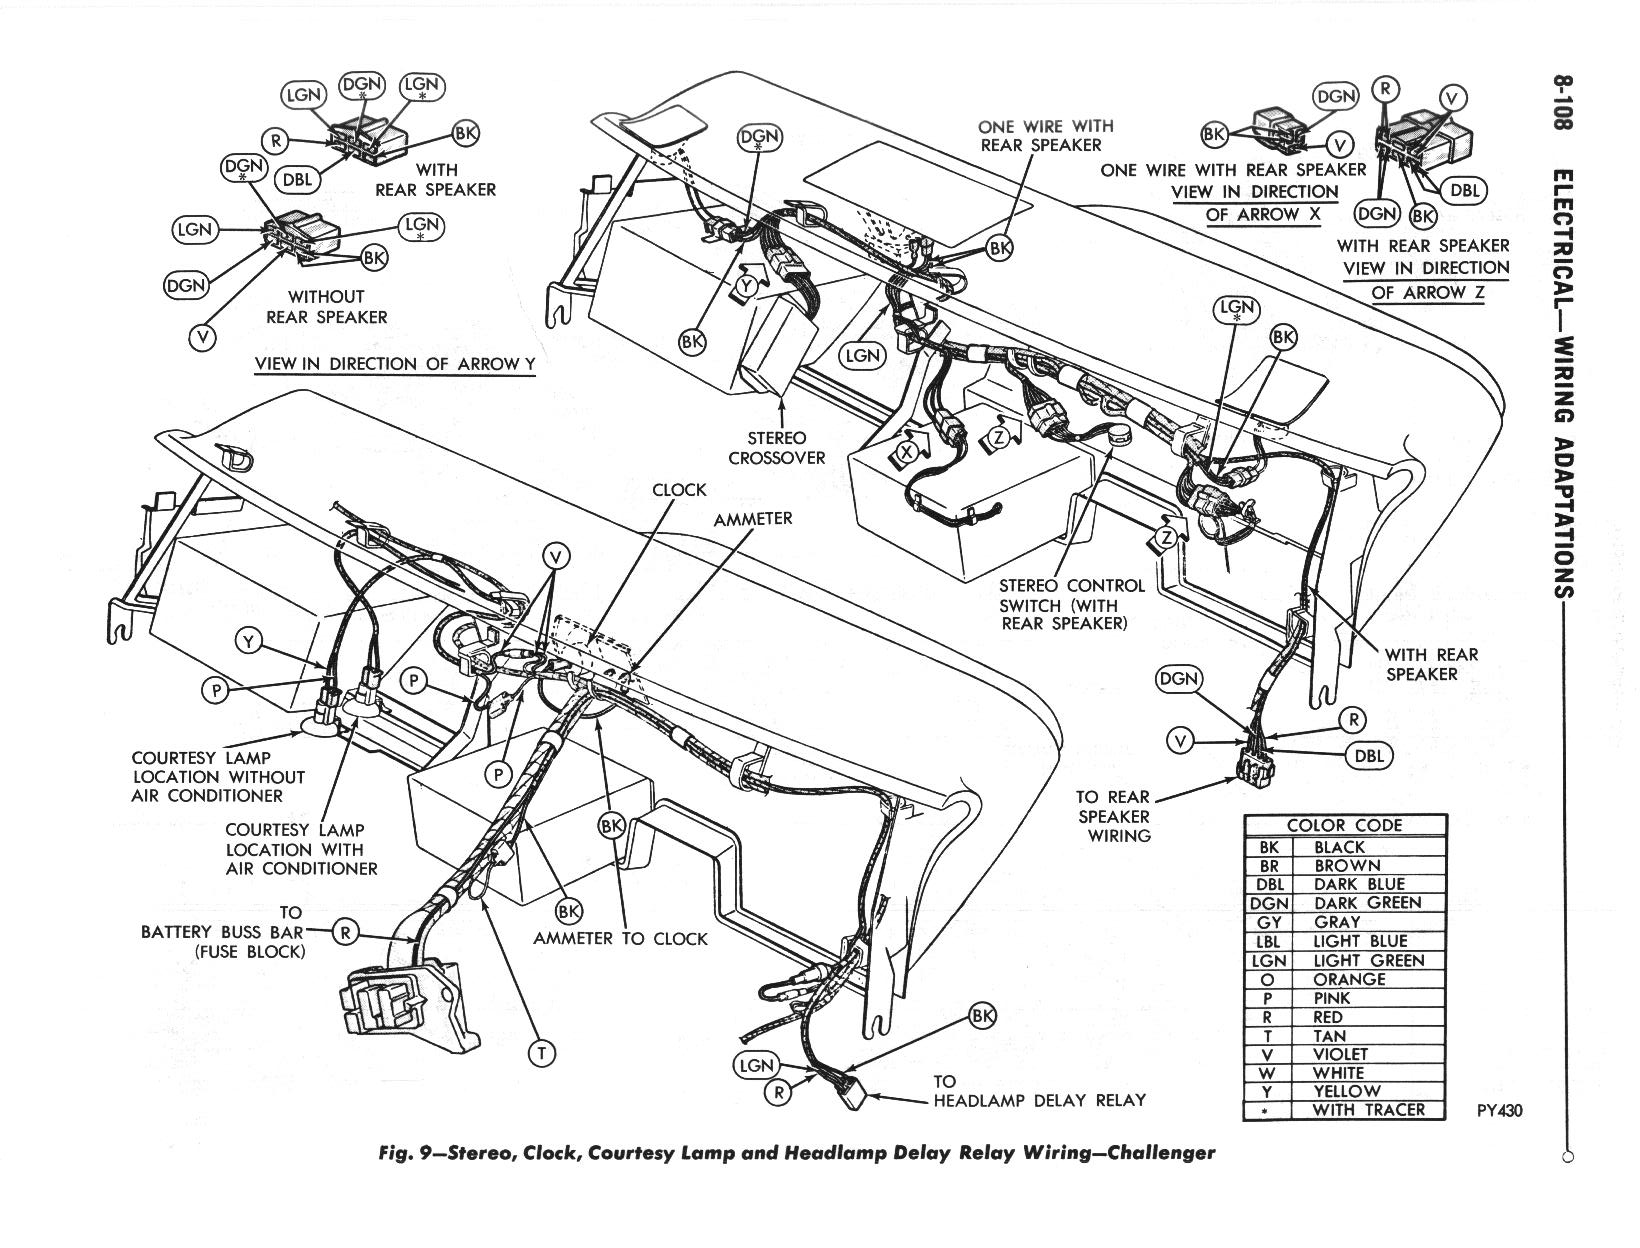 1970 plymouth gtx wiring diagram